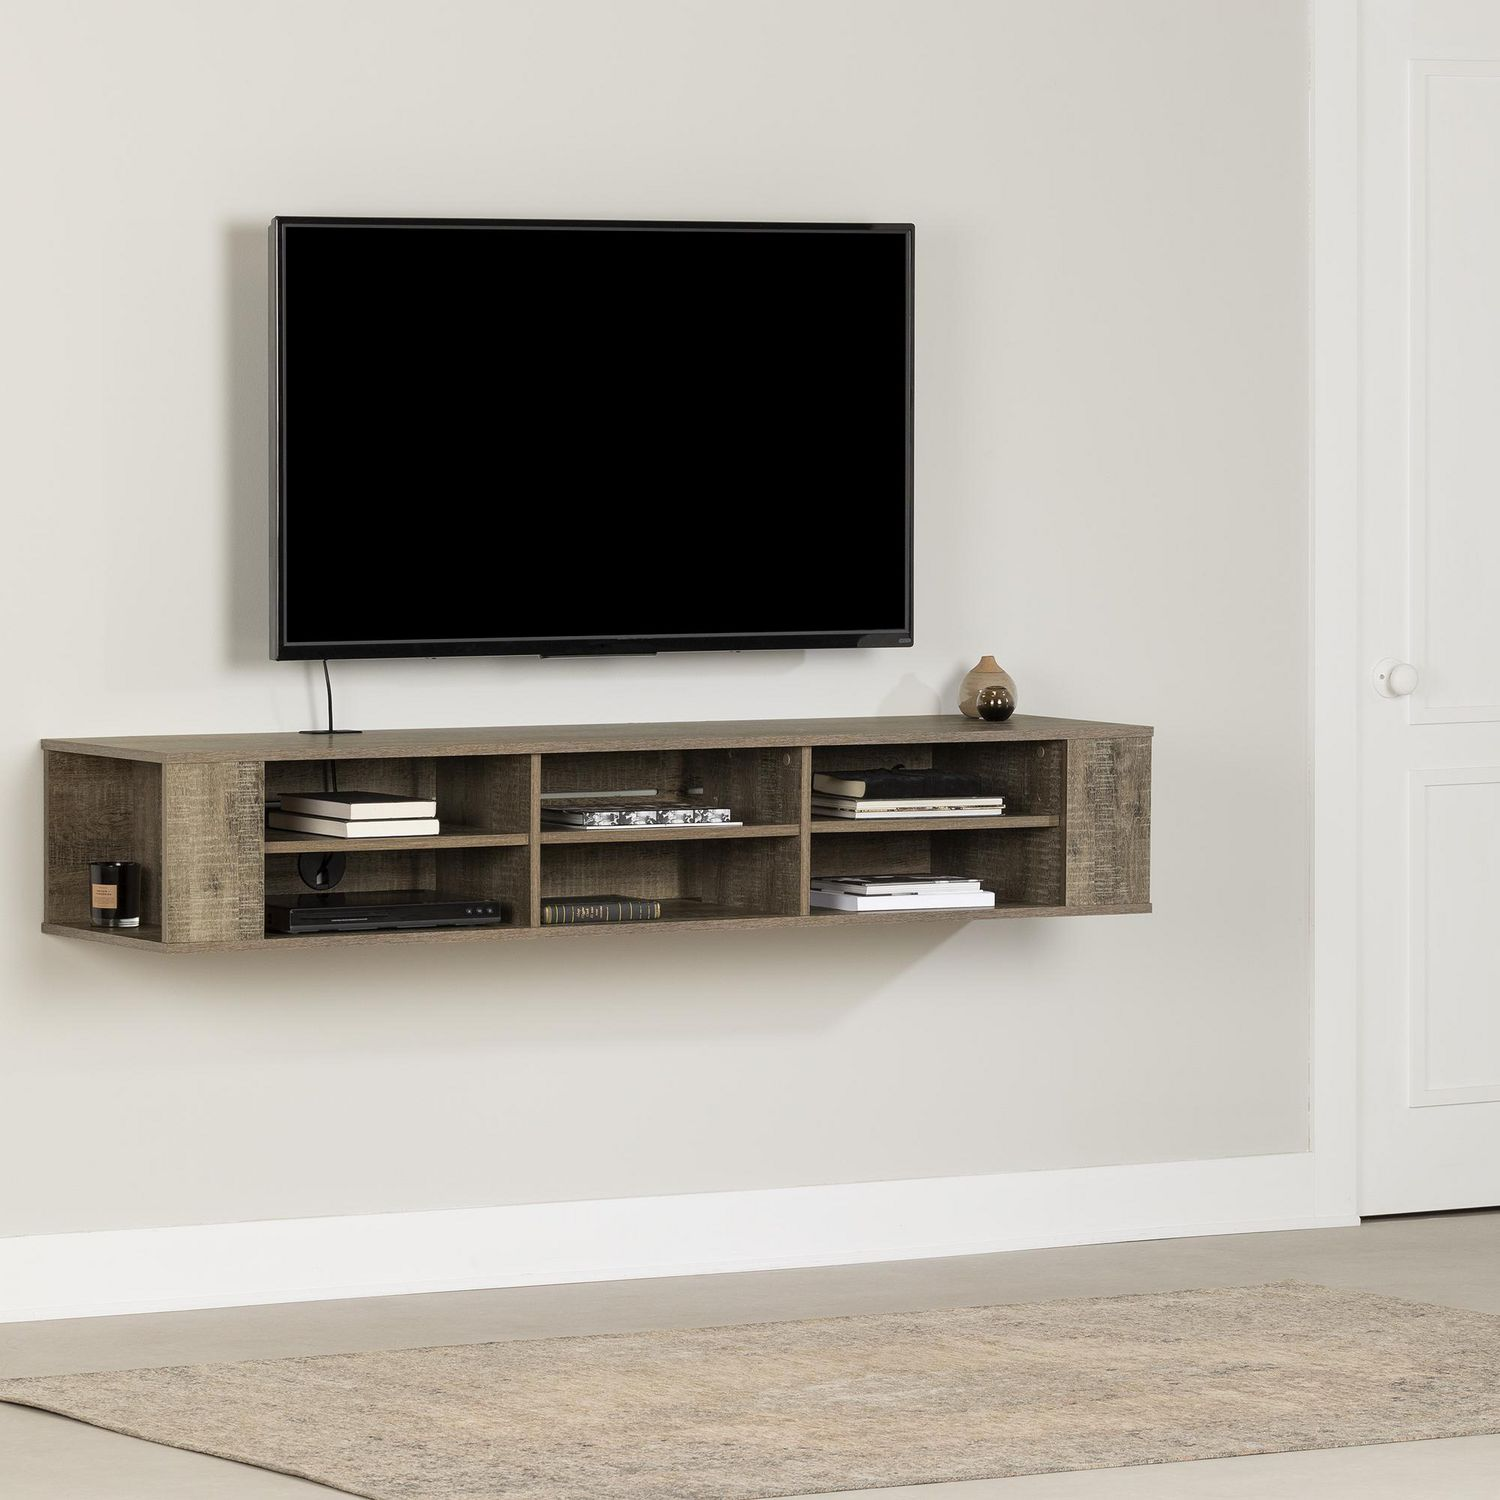 living room media furniture red cream and black ideas south shore city life wall mounted console walmart canada